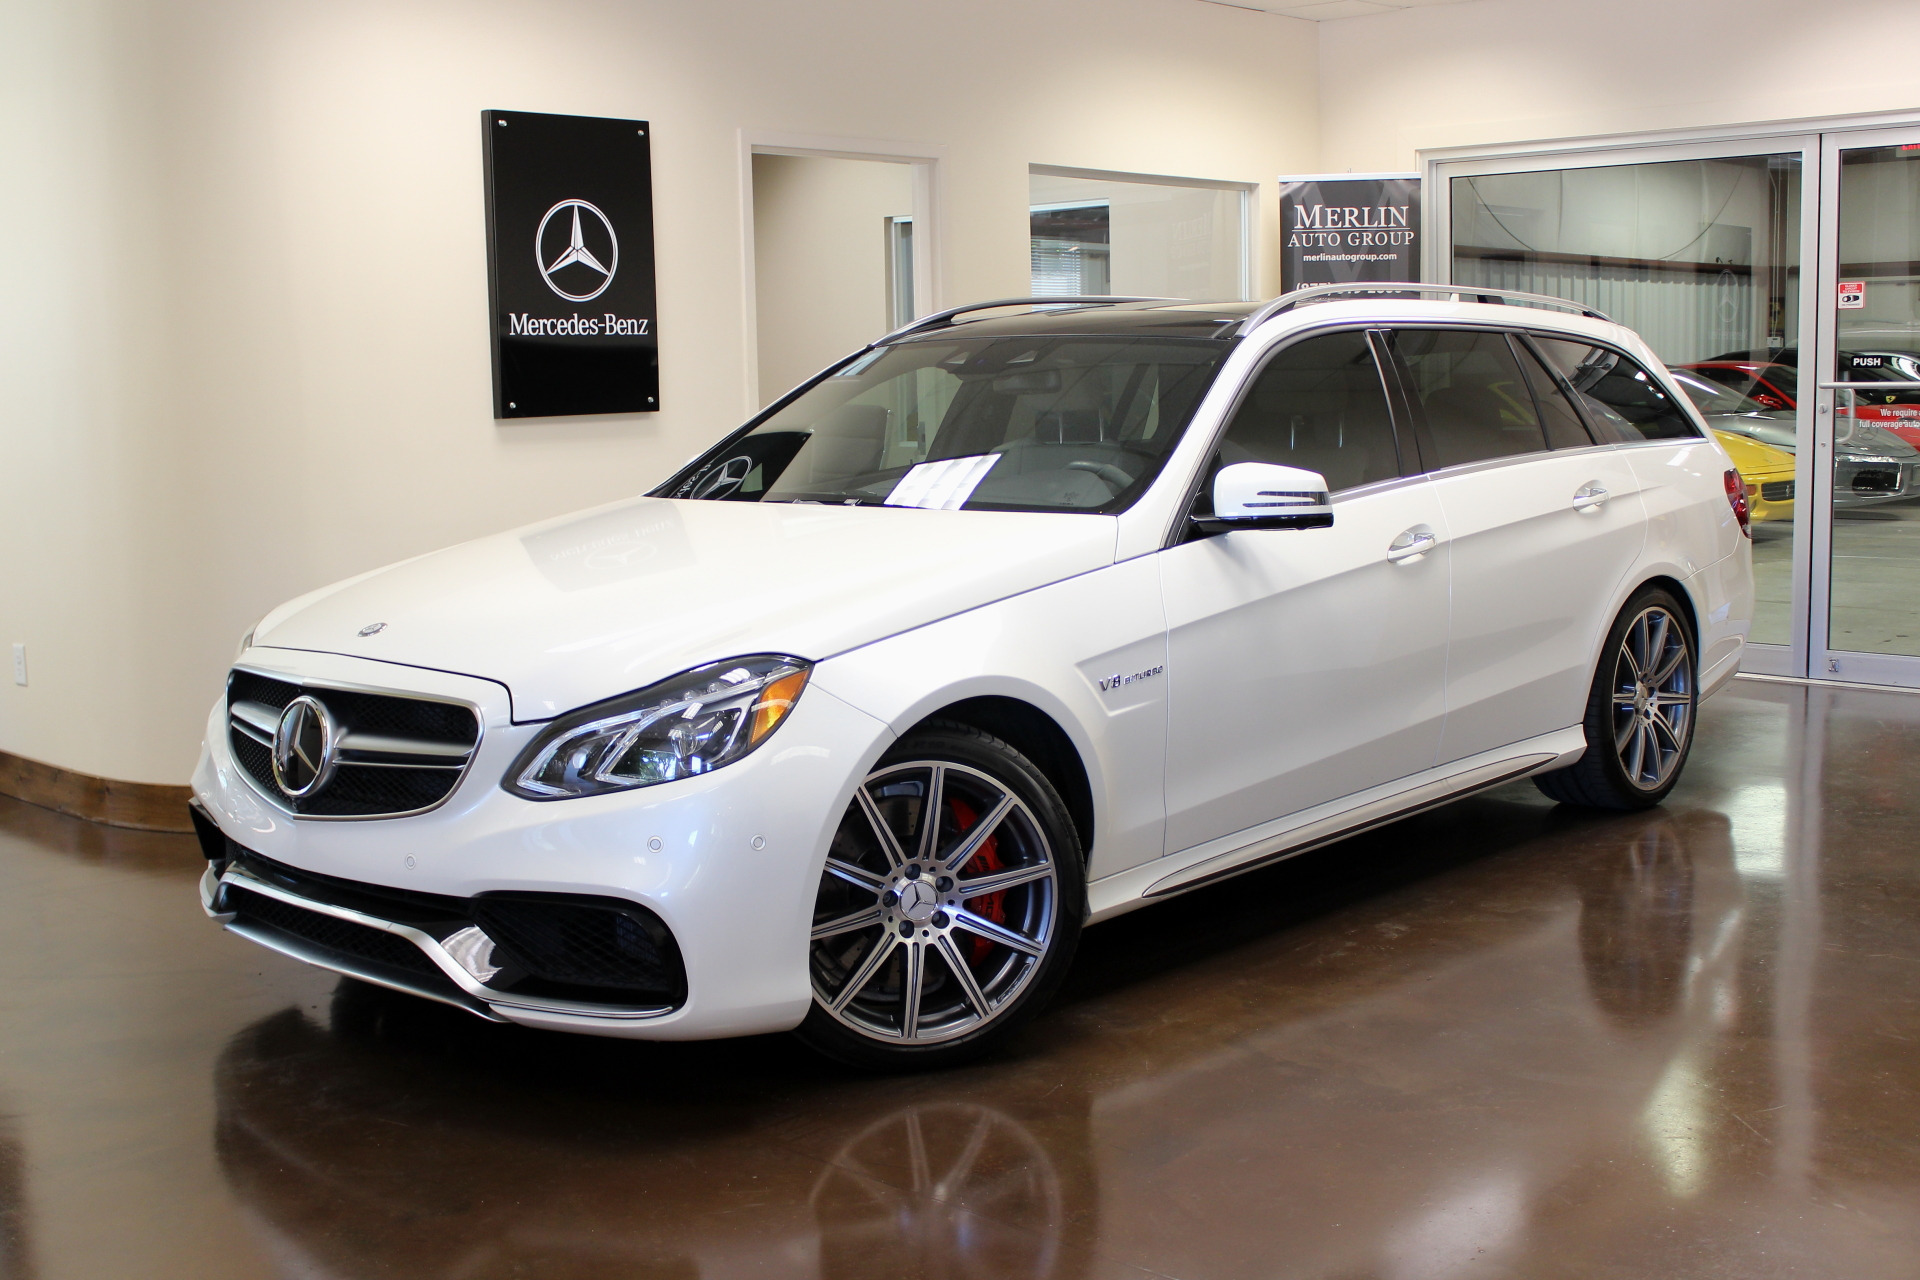 Used 2014 mercedes benz e class stock p3089 ultra luxury for 2014 mercedes benz e class e63 amg s model